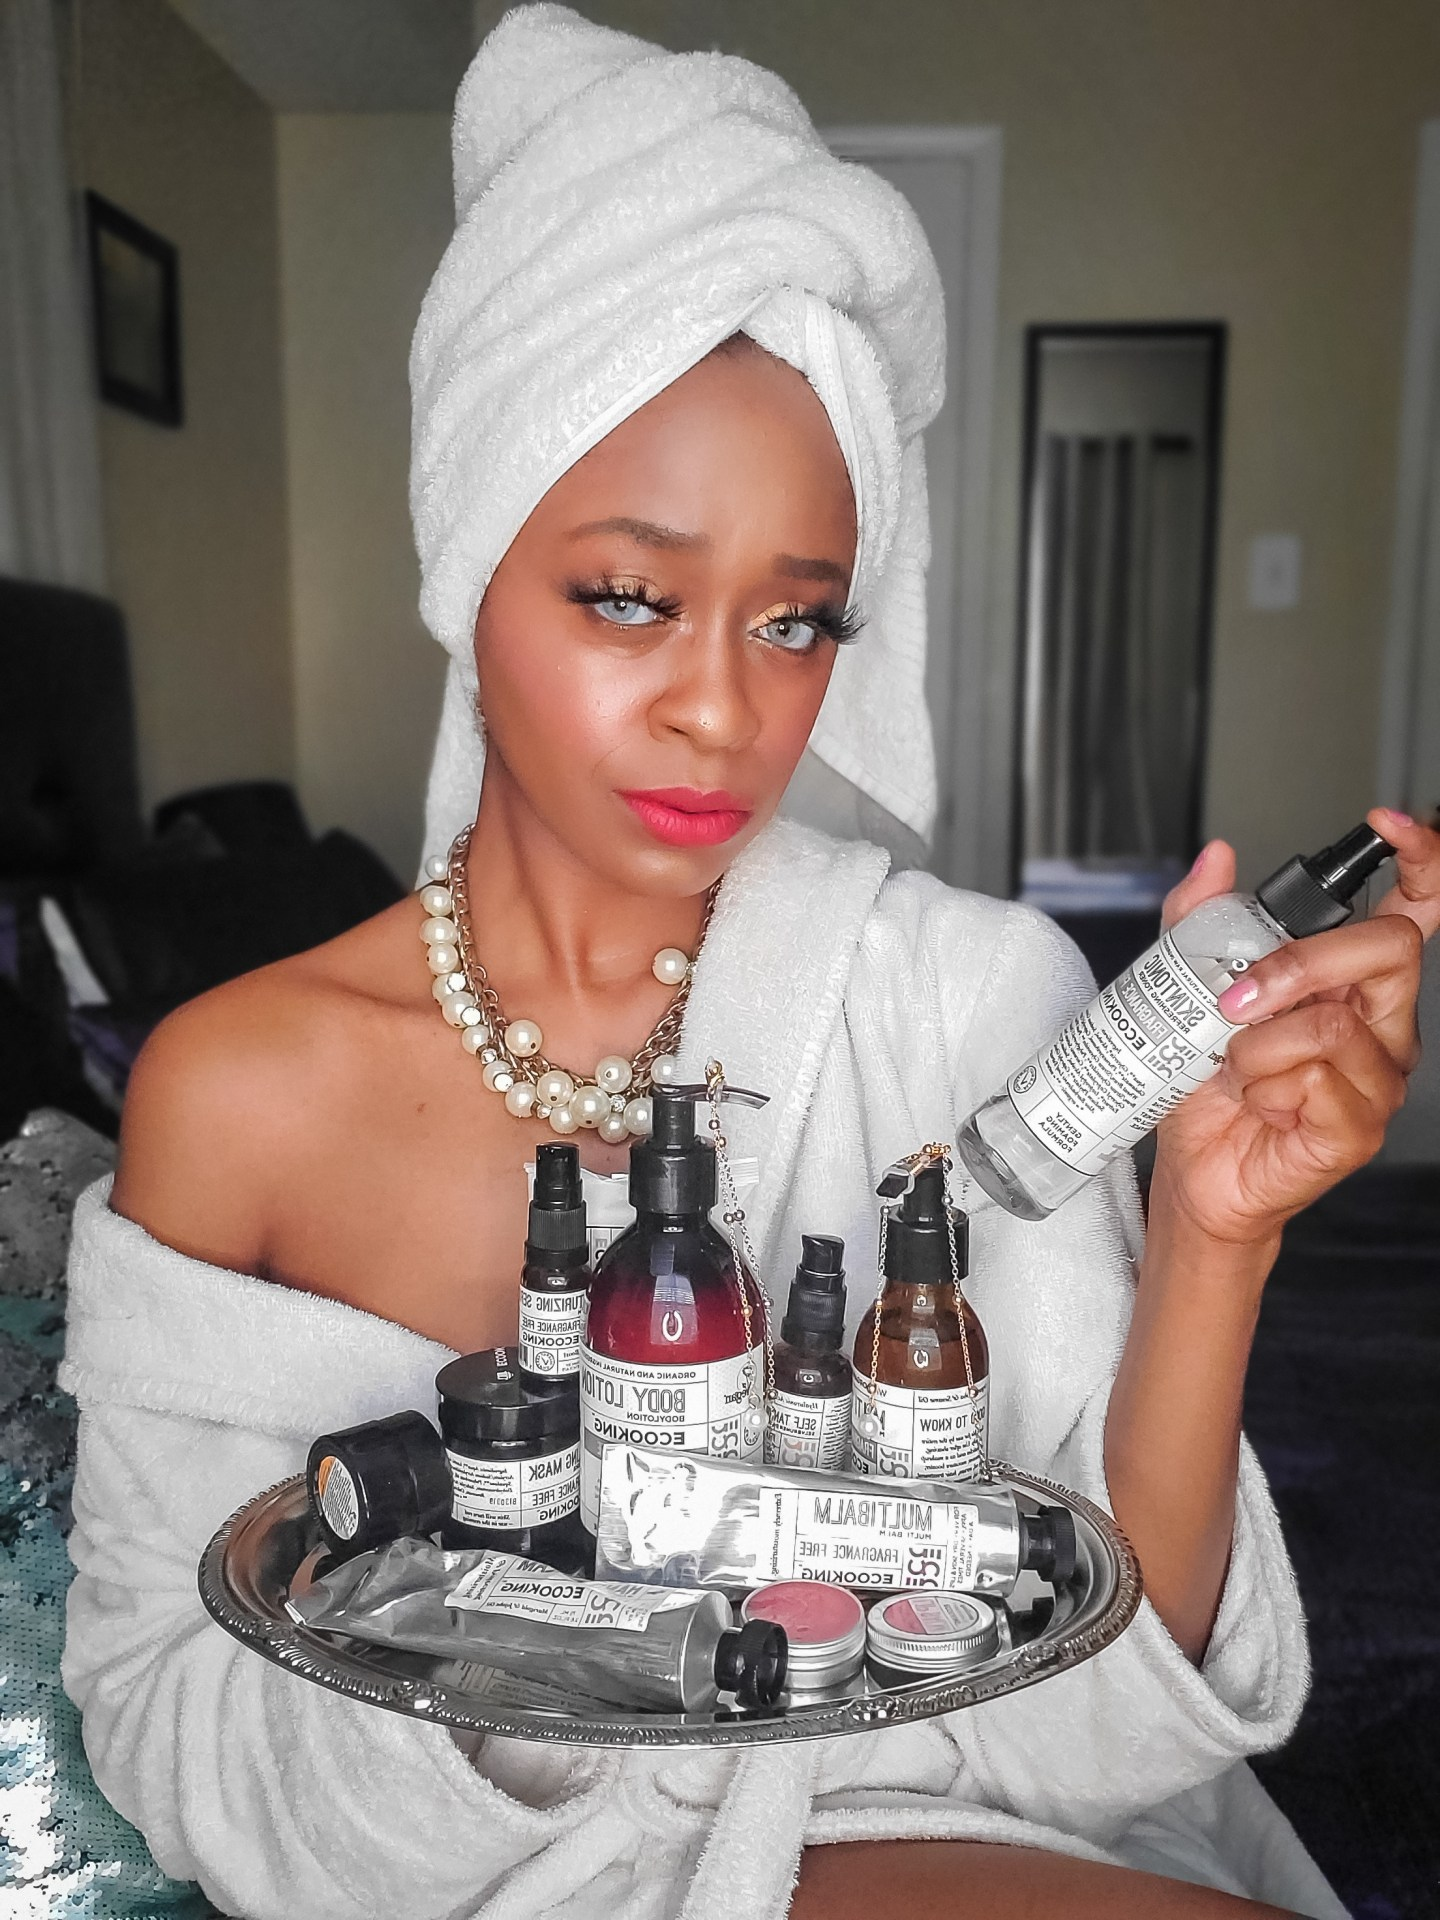 Skincare Chronicles: Self-Care During Quarantine